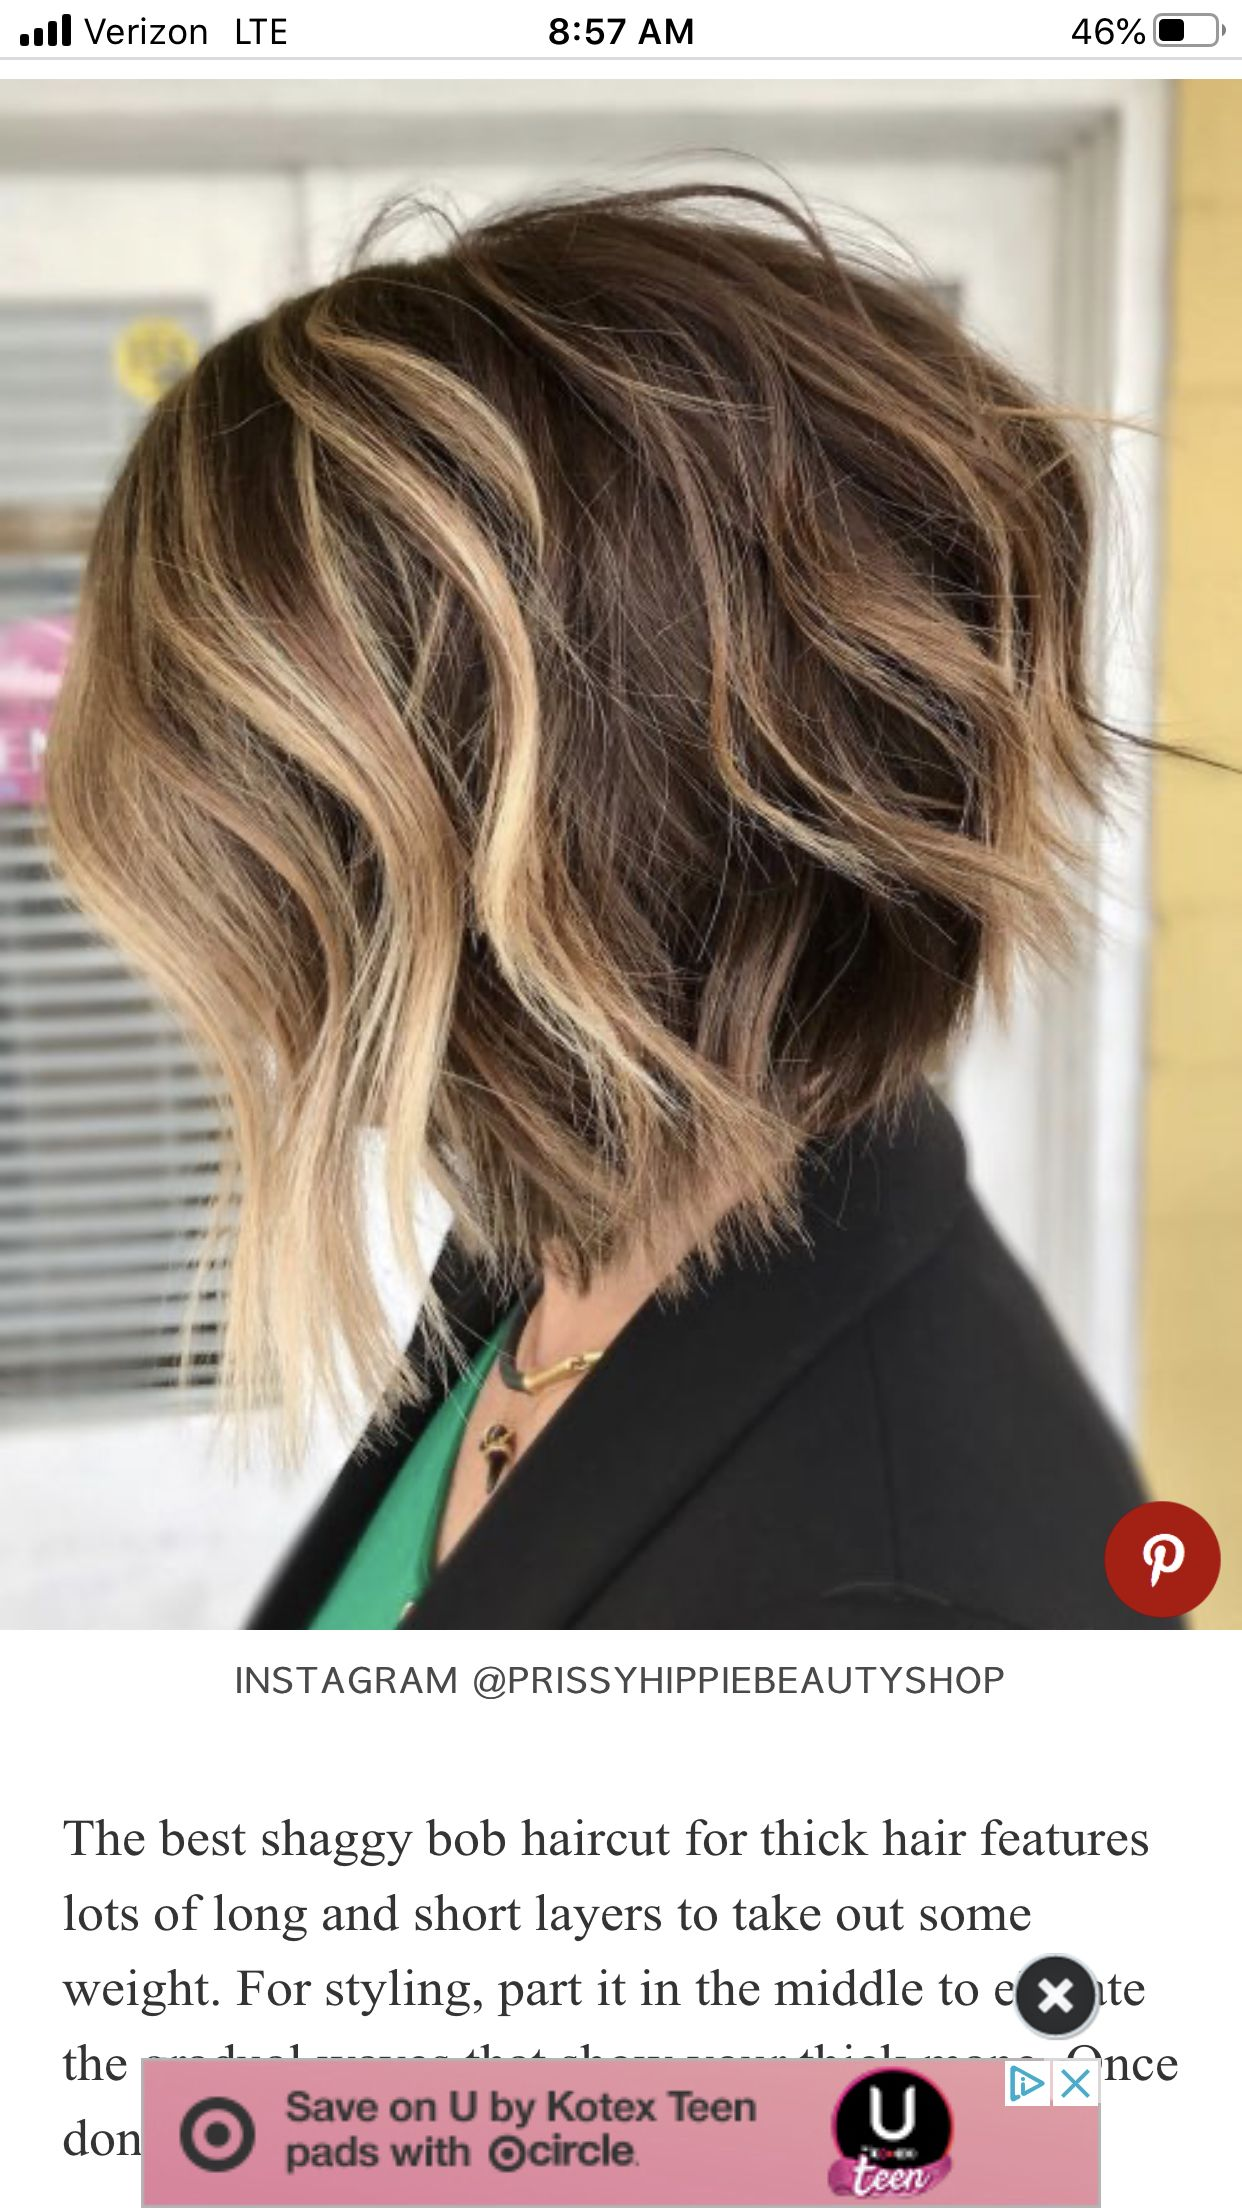 Pin By Susan Rosburg On Hair Styles In 2020 Hair Styles Hair Style